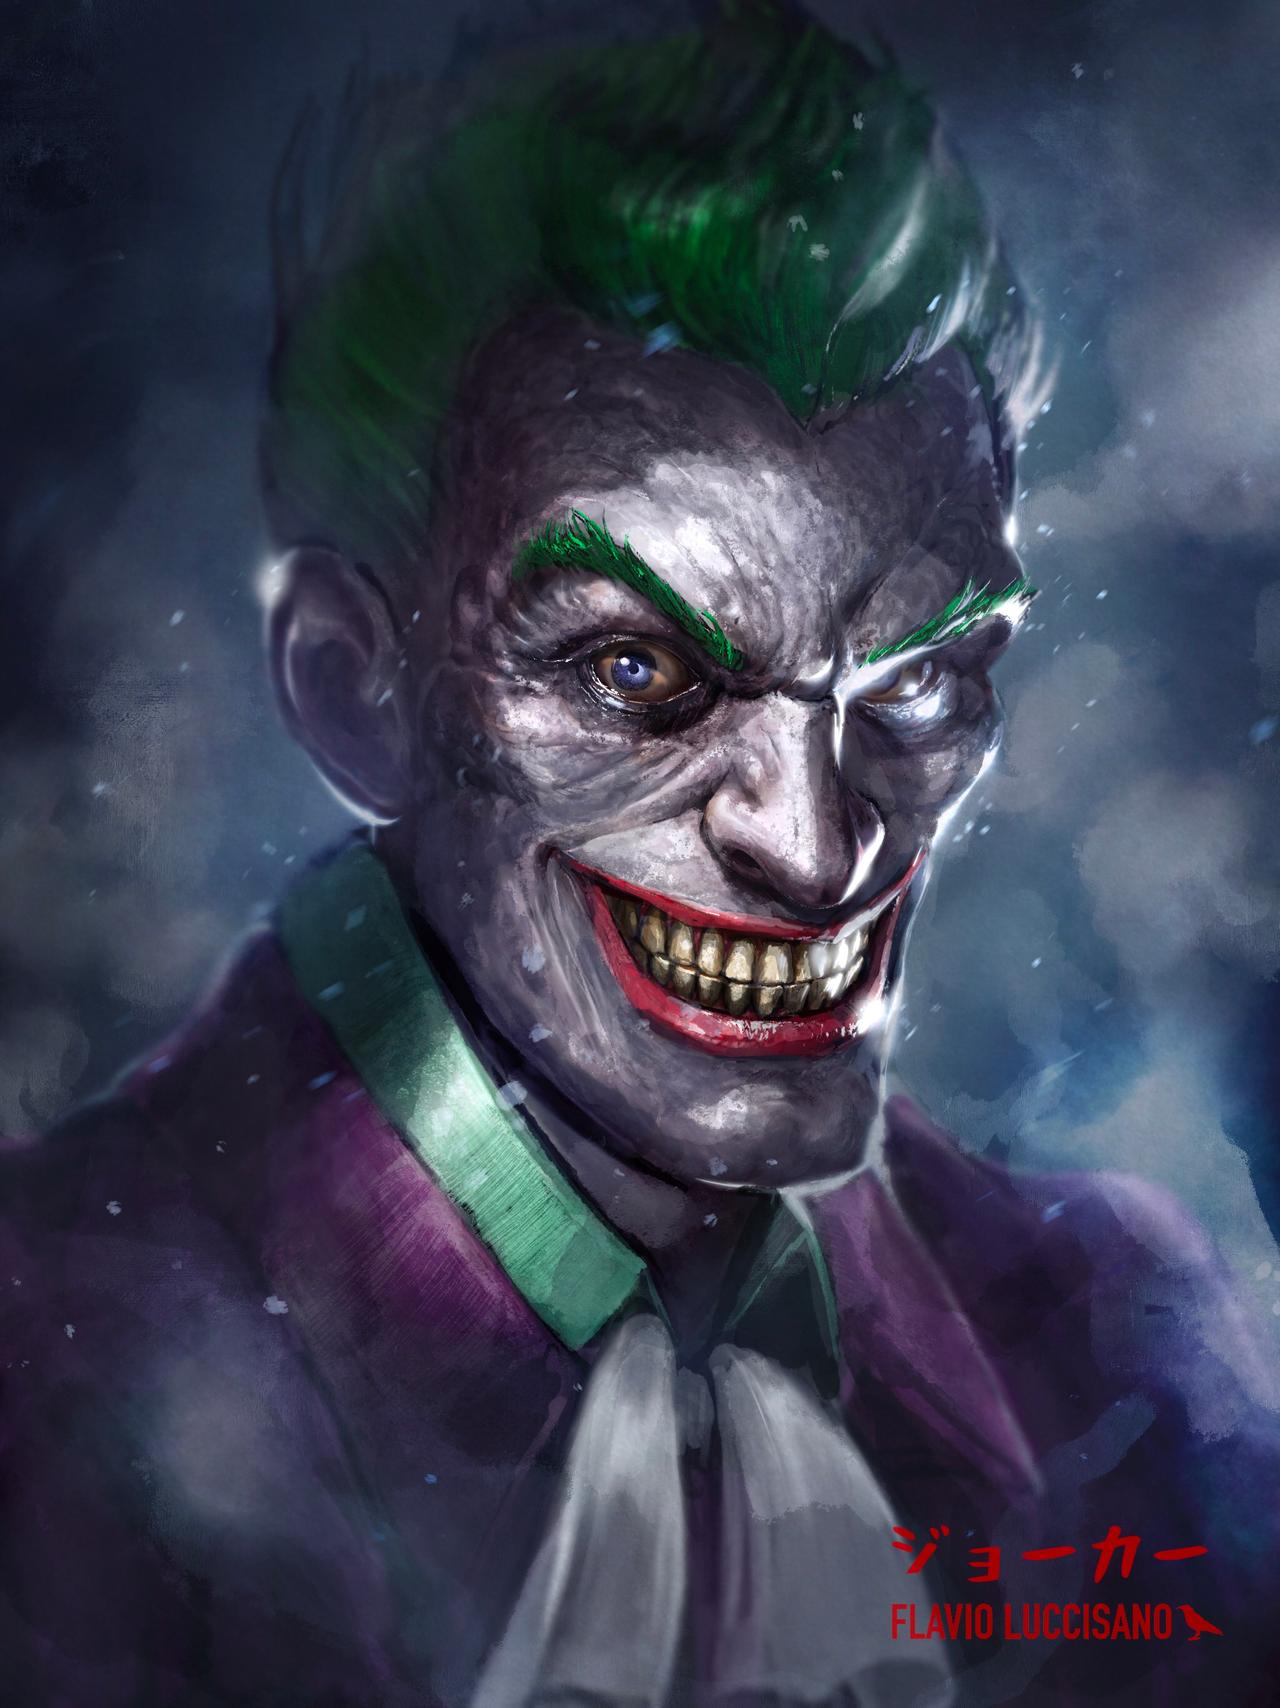 joker_by_flavioluccisano_ddvoc4k-fullvie